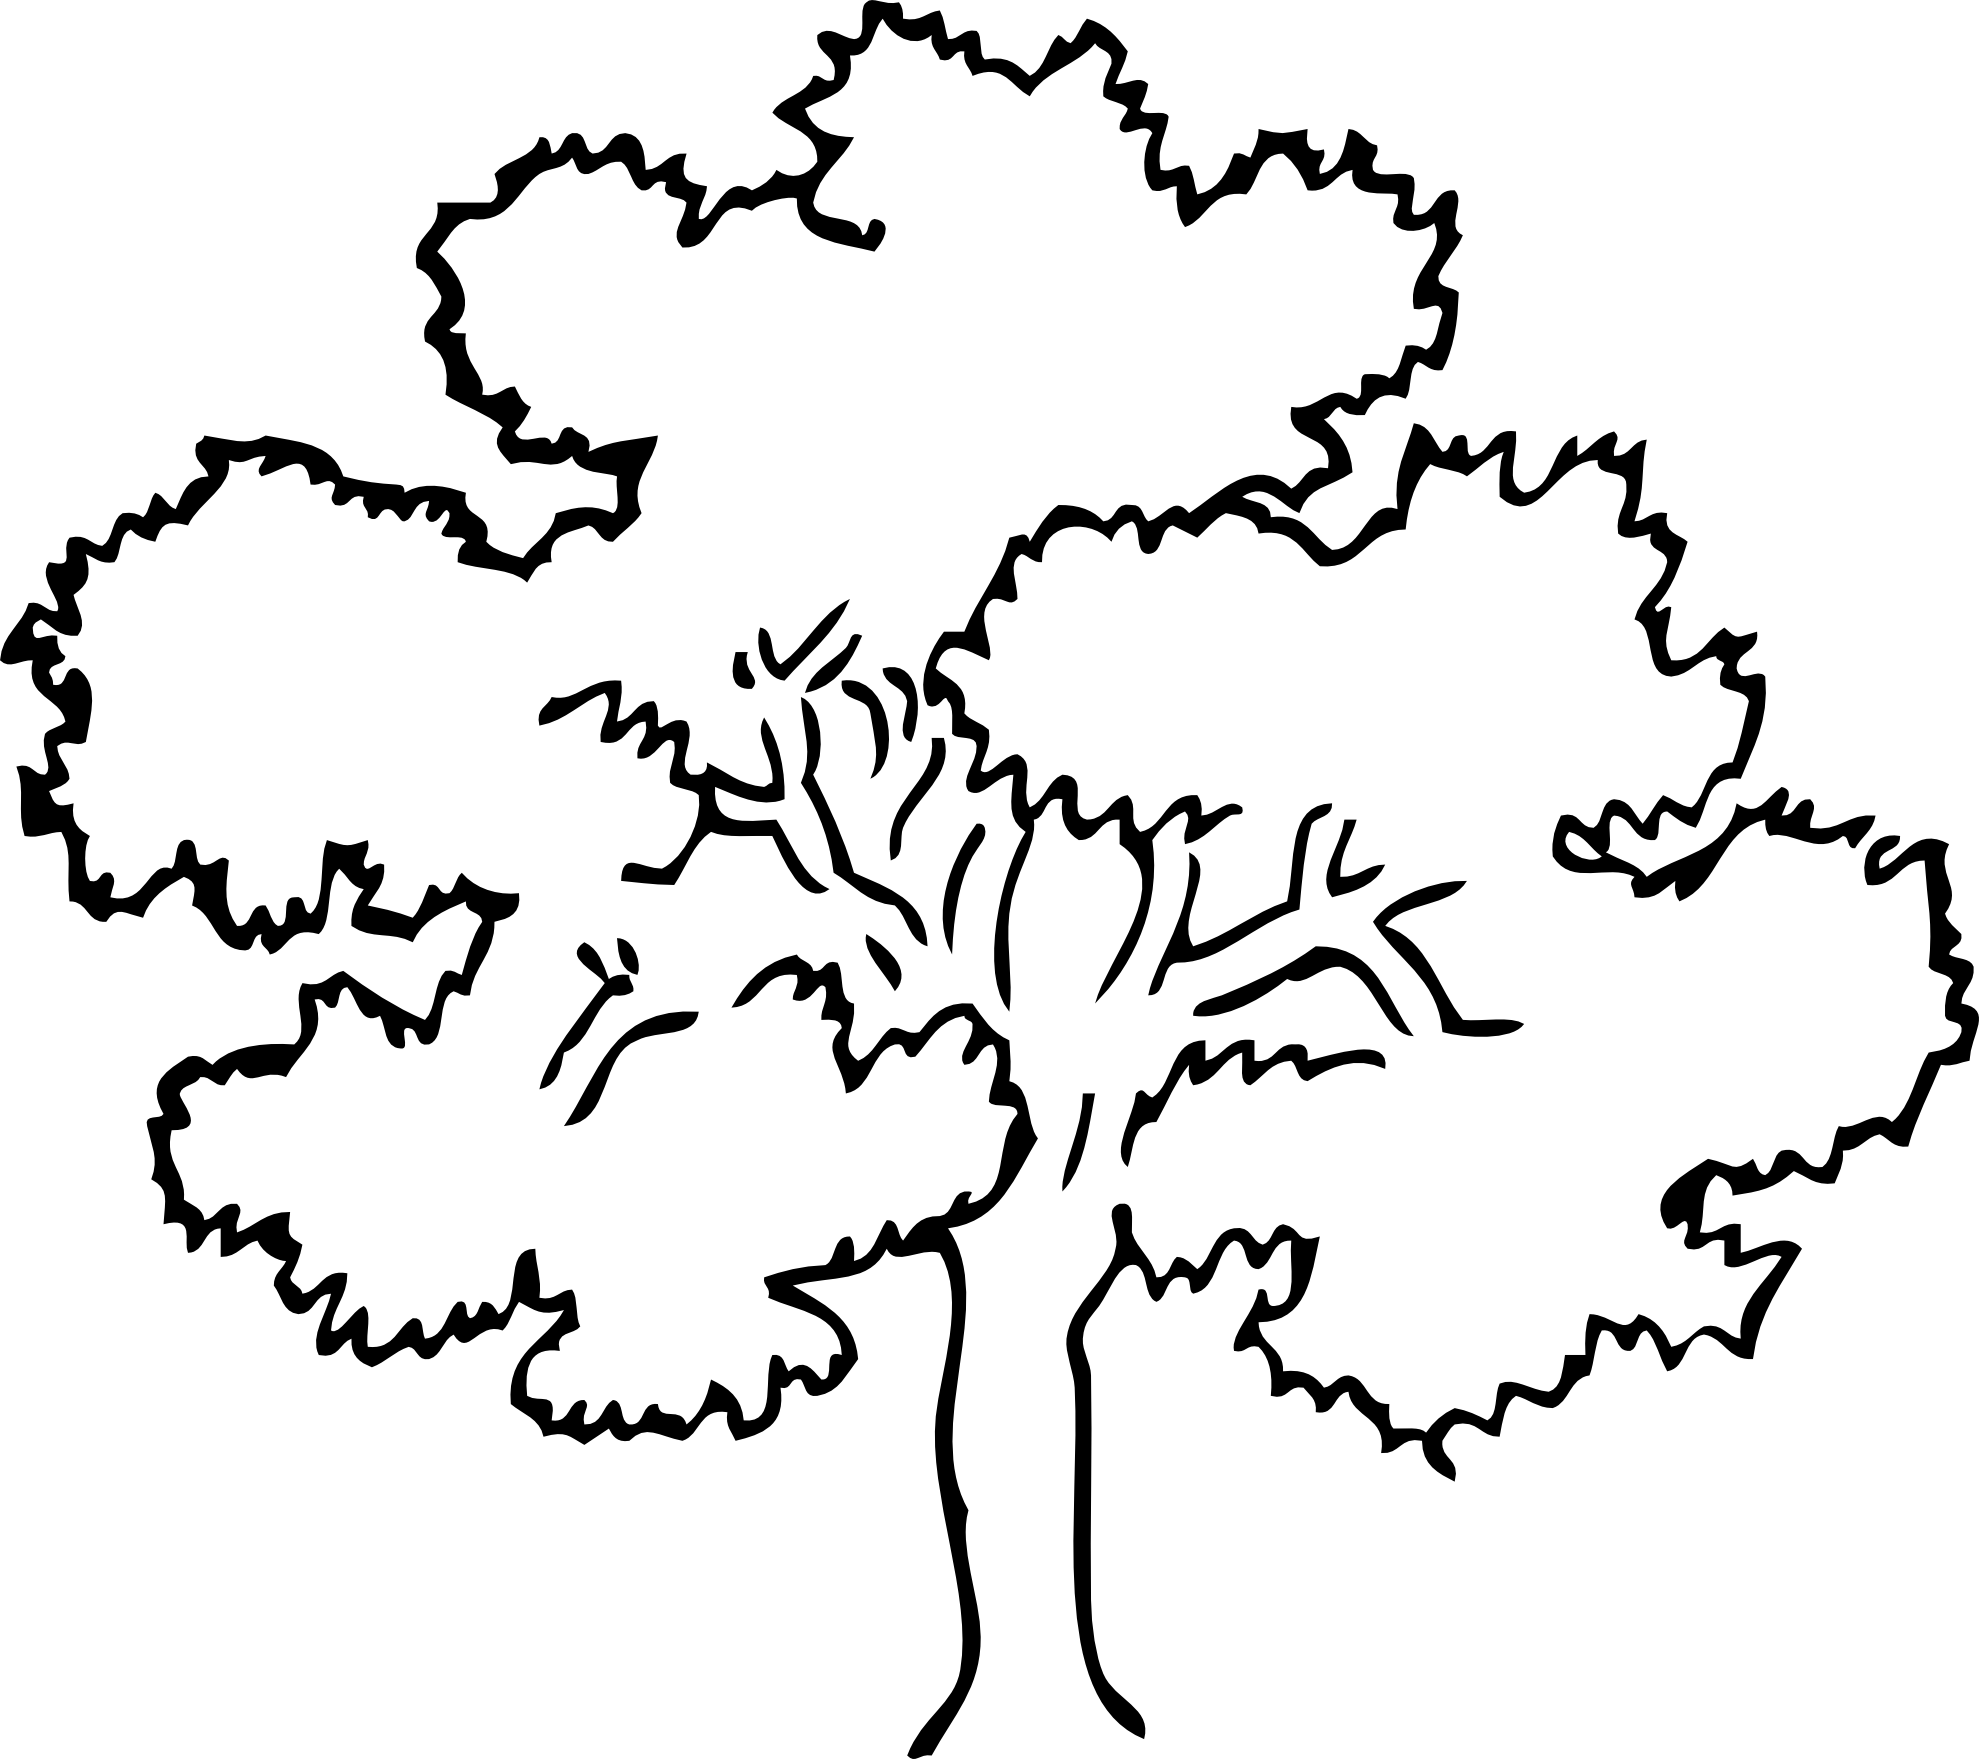 Best Tree Clipart Black And White #18953 - Clipartion.com